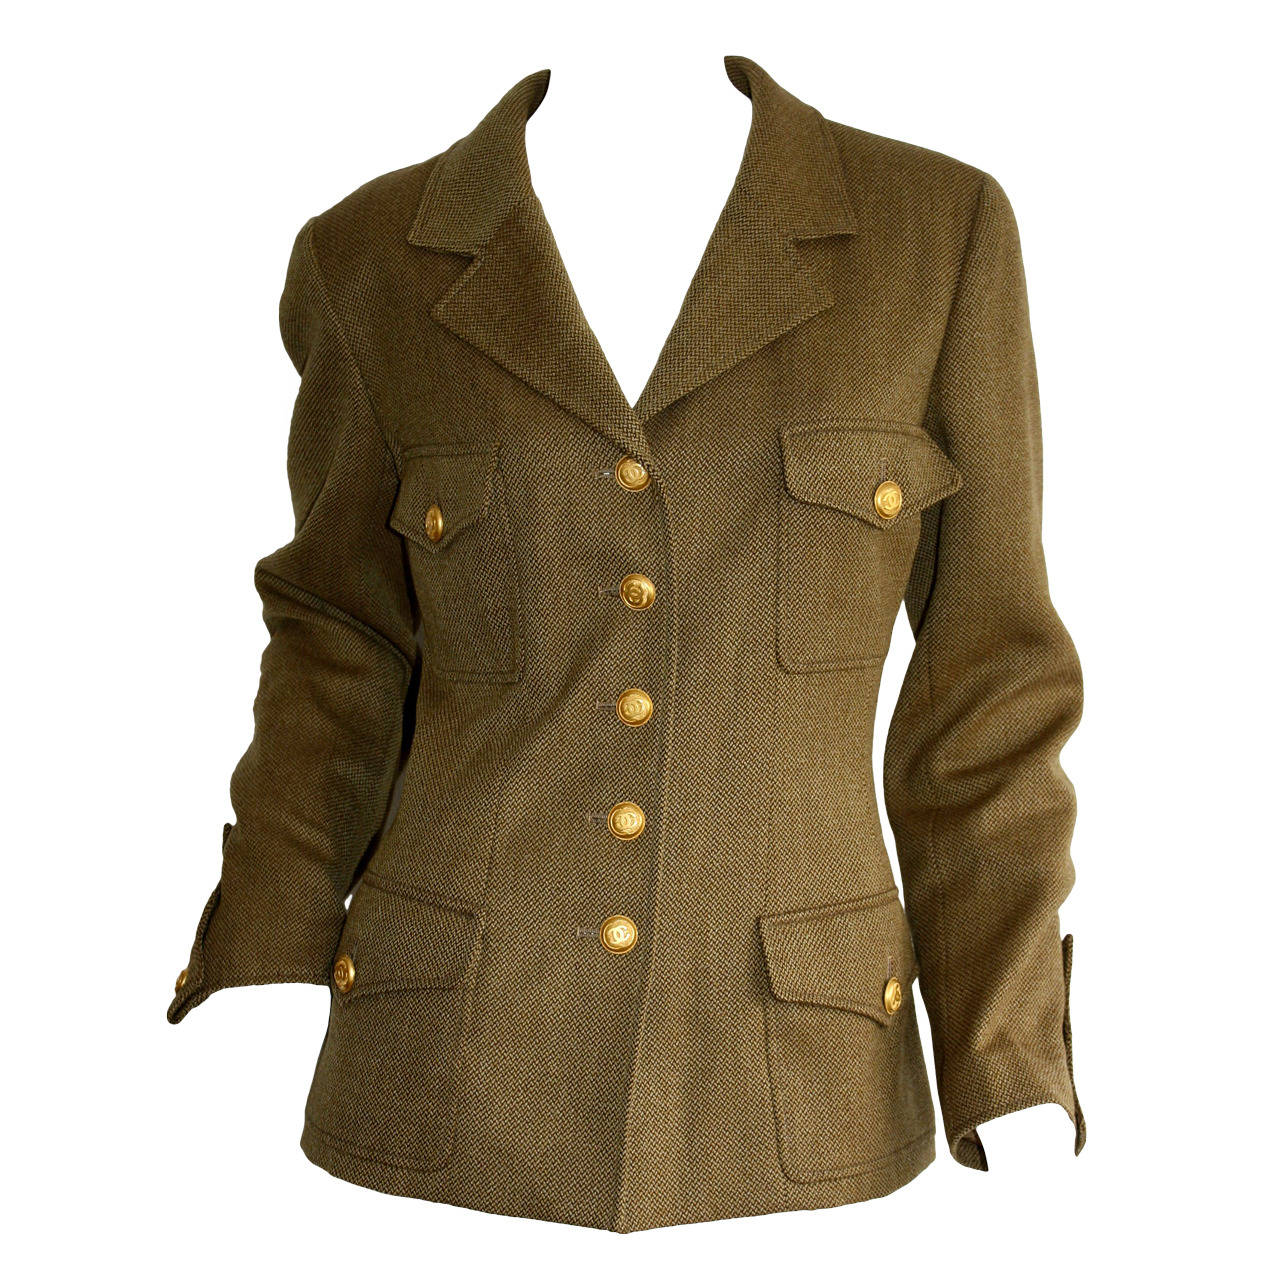 Vintage Chanel 96A Military Sz 42 Jacket Gold Logo Buttons Brand New w/ Tags For Sale